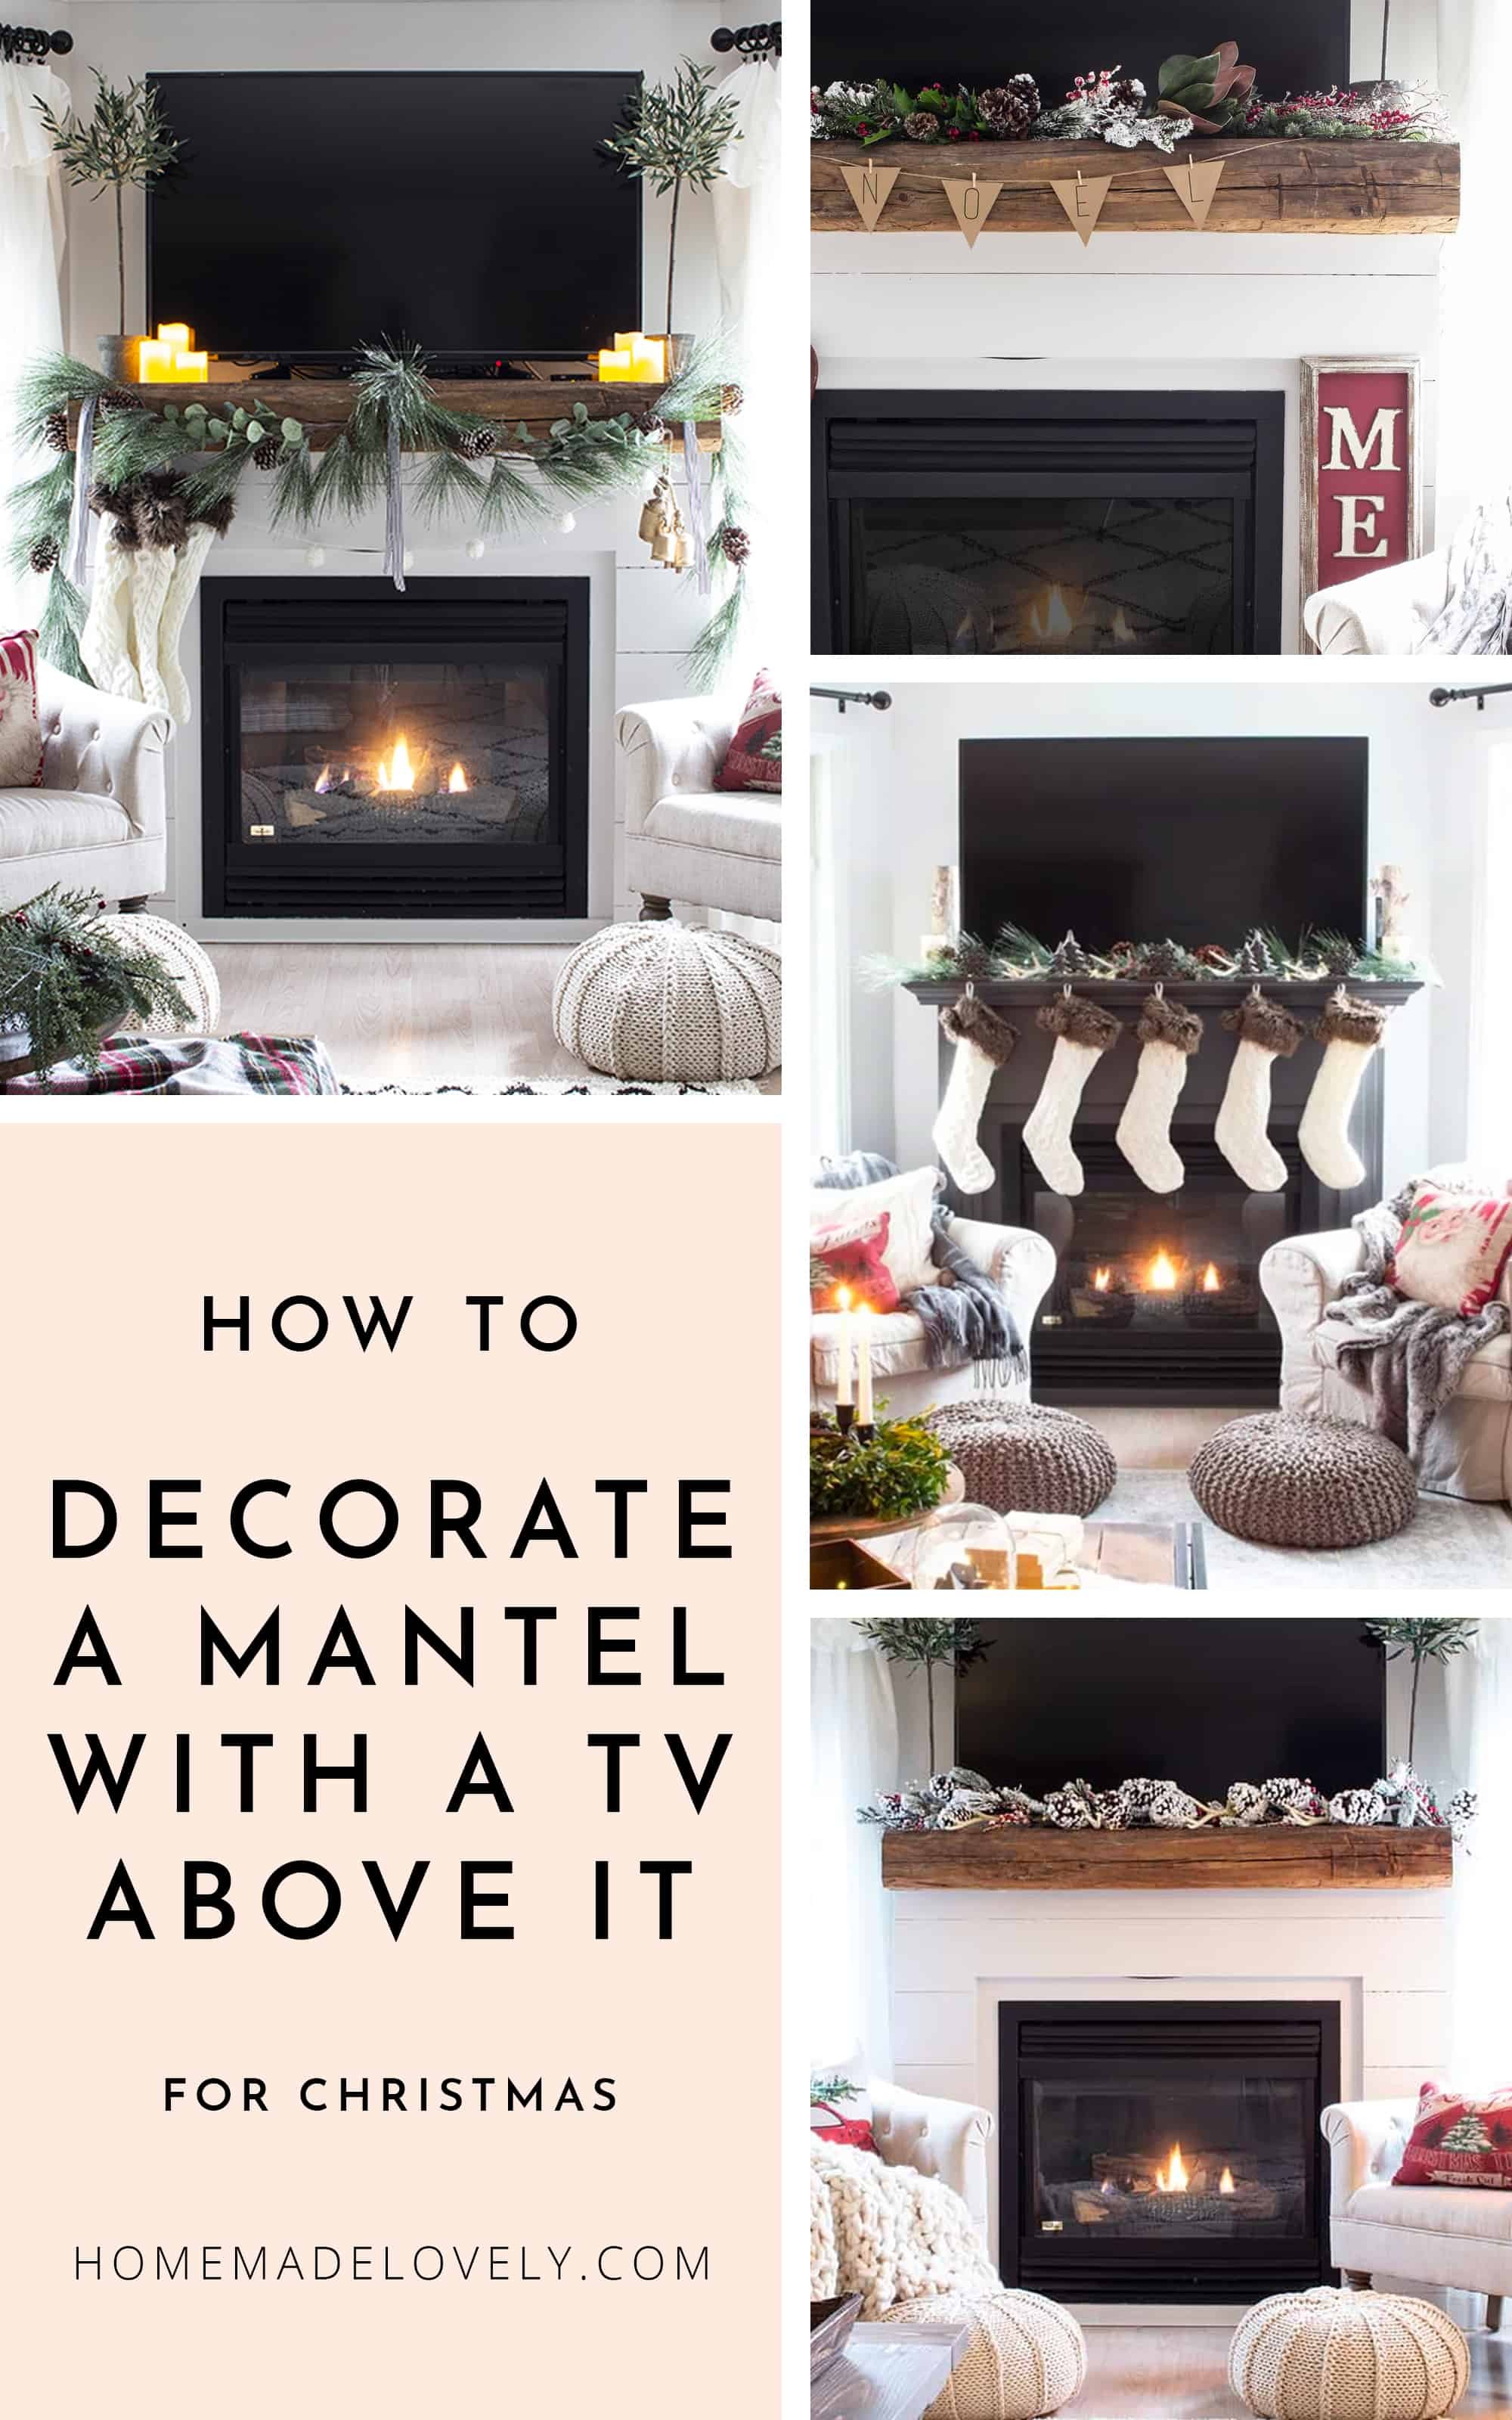 How To Decorate A Mantel With A Tv Above It For Christmas